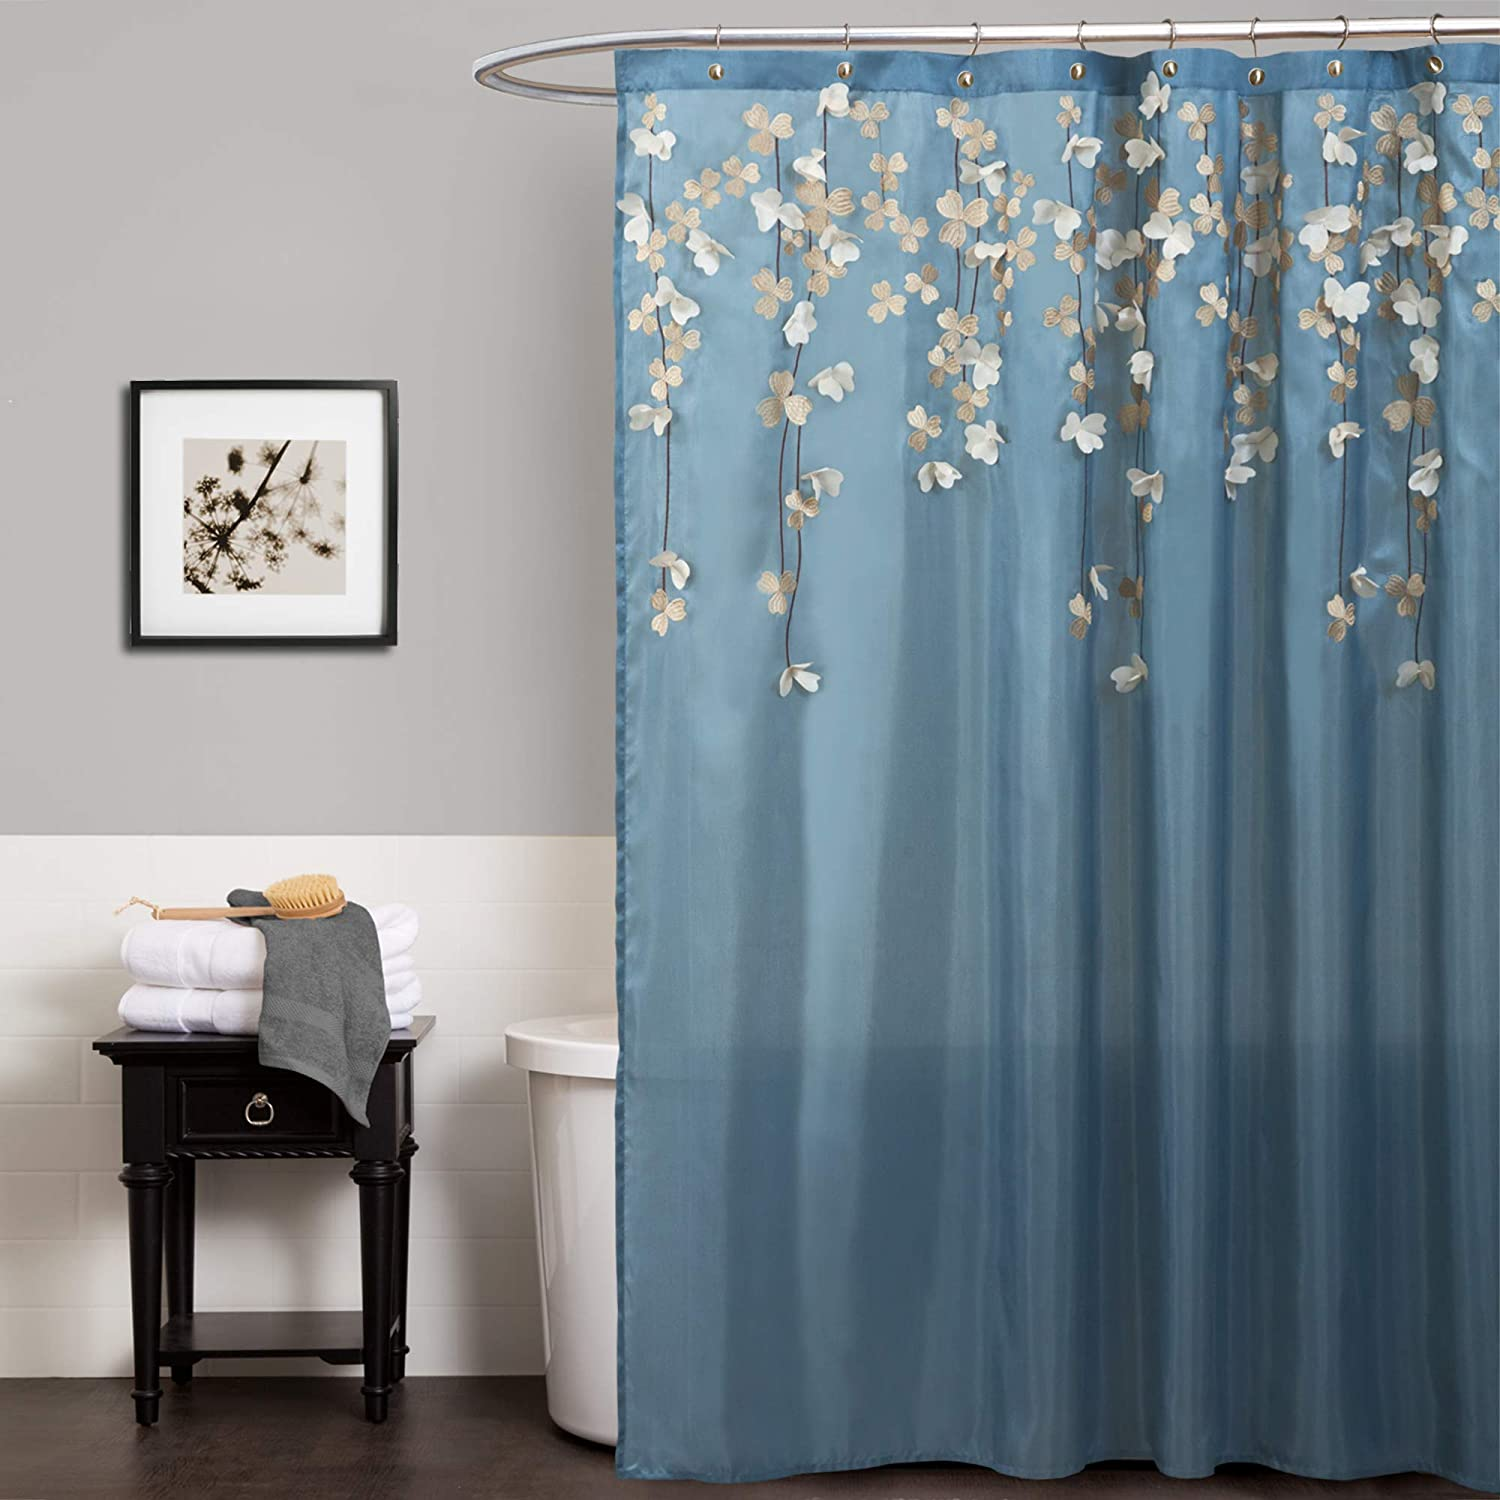 "Lush Decor Flower Drops Shower Curtain | Embroidered Textured Fabric Floral Bathroom Decor, 72"" x 72"", Blue and White"